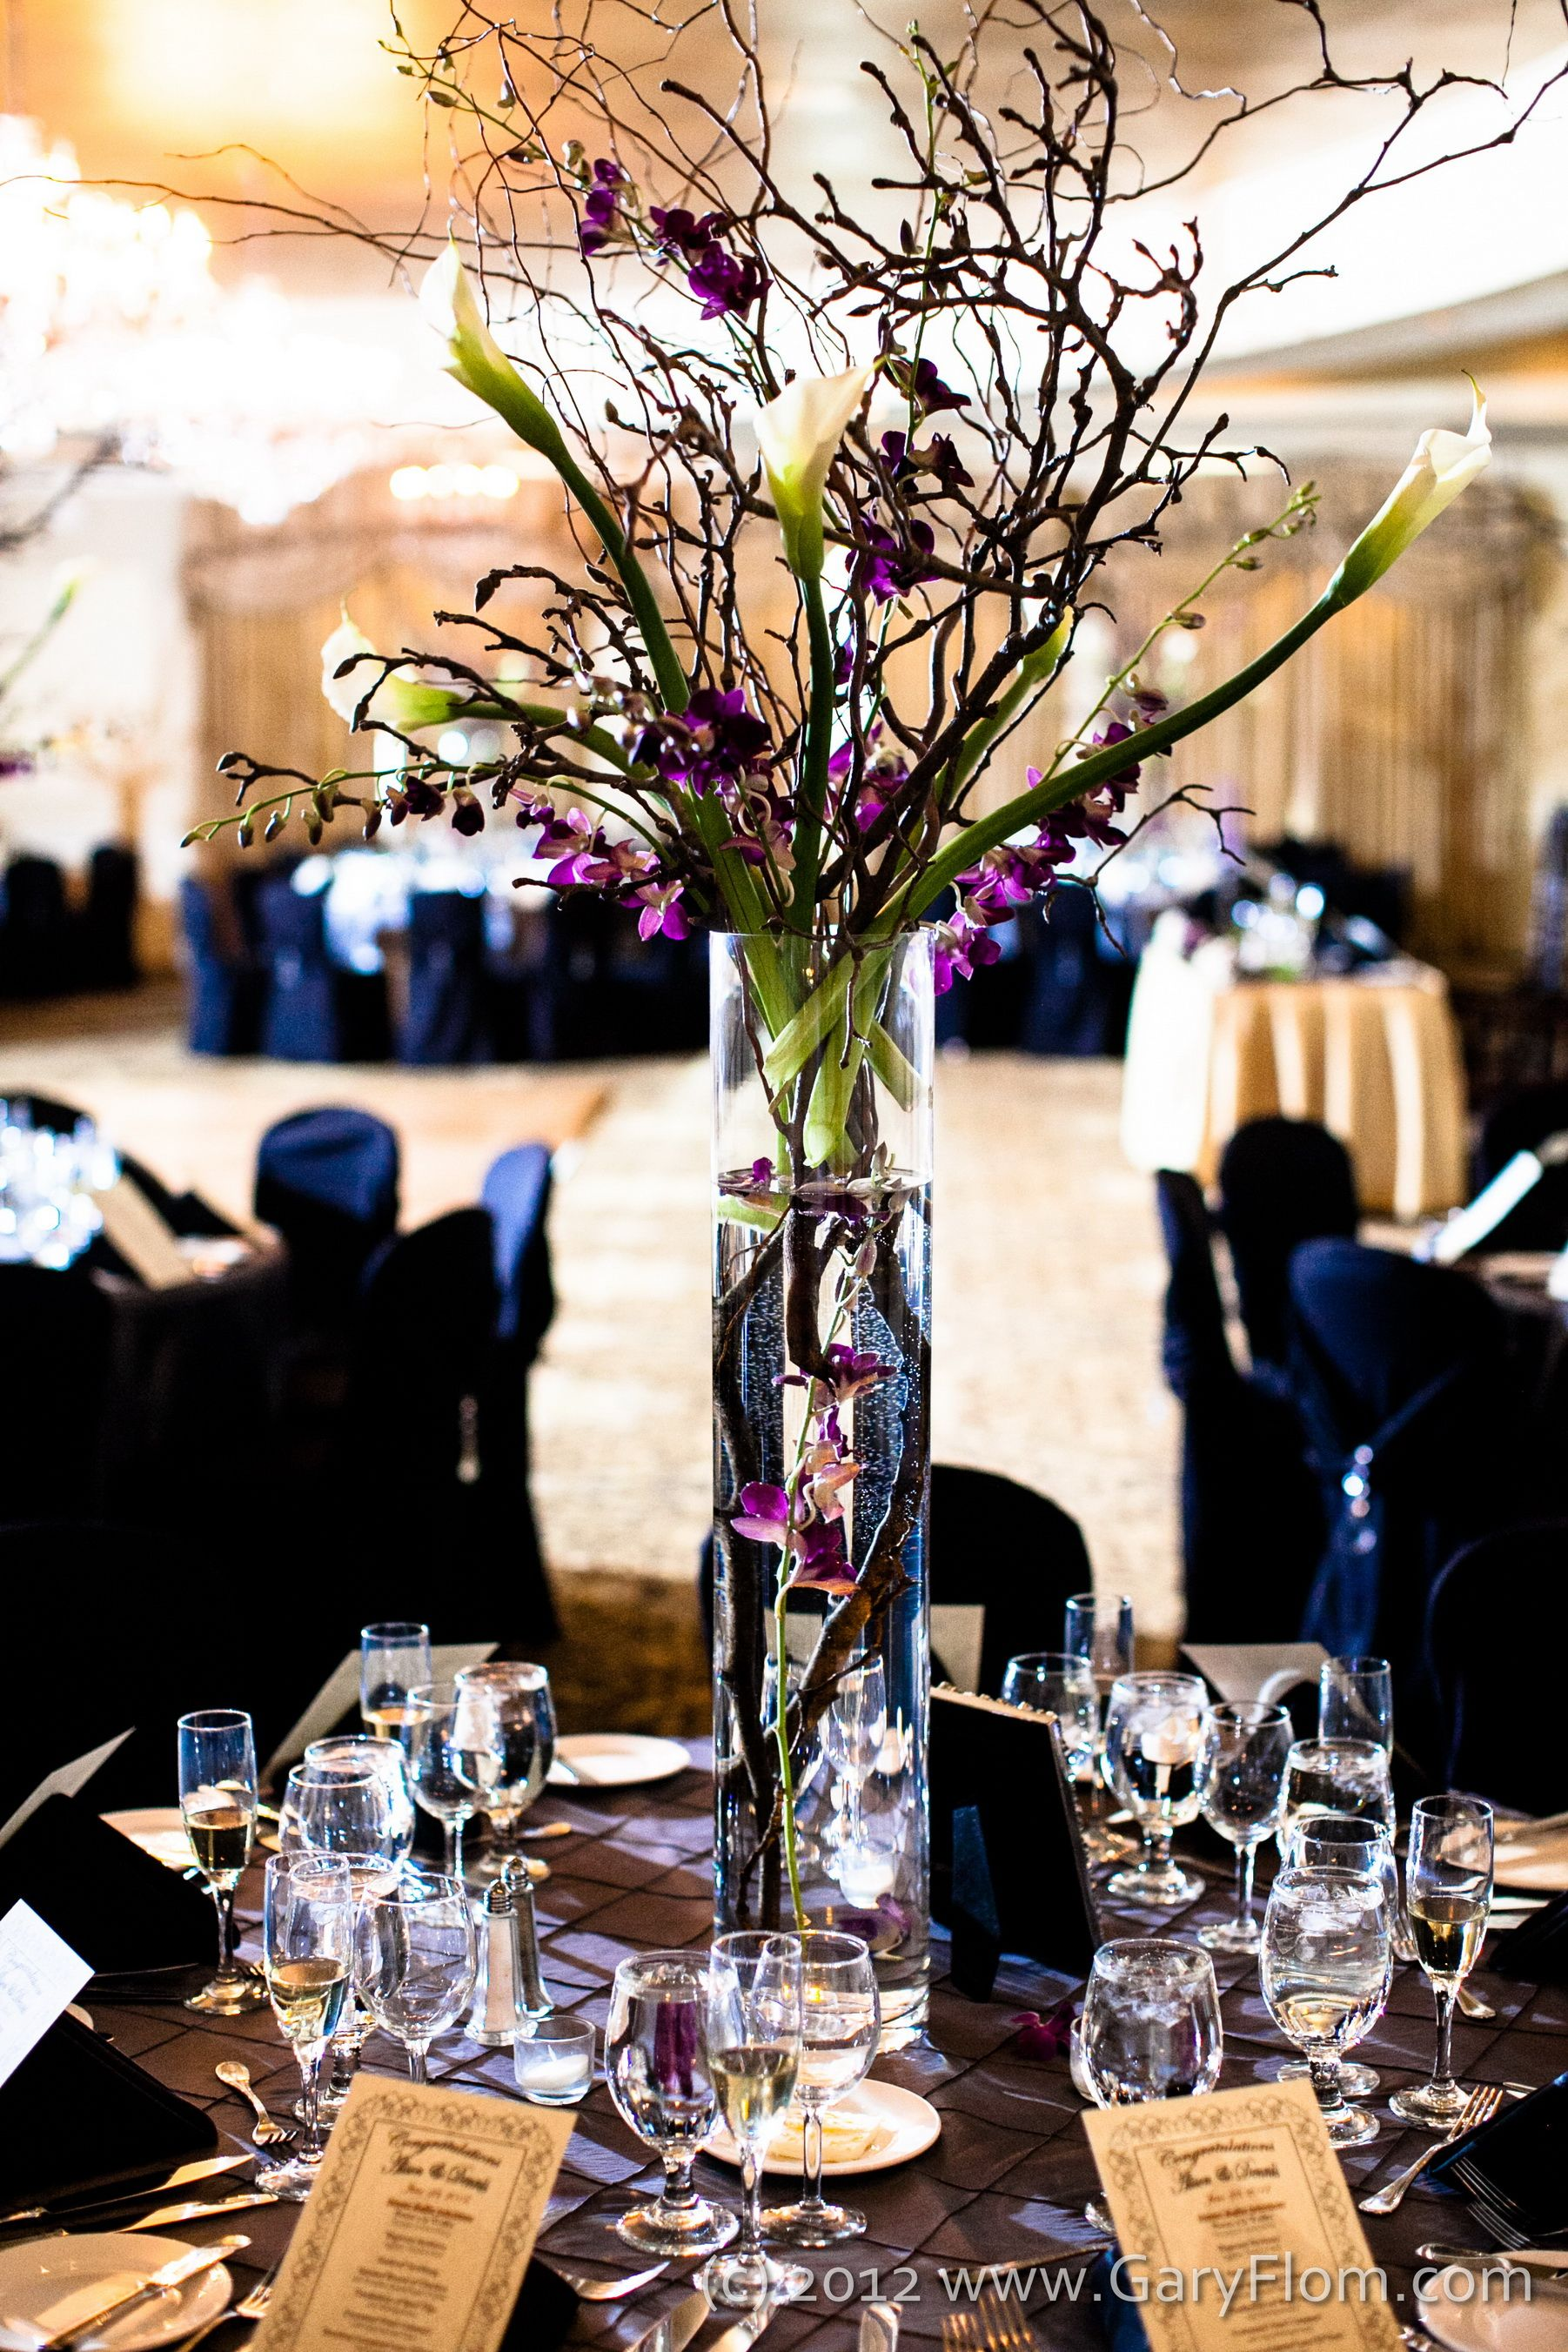 Centerpieces 6ft Tall Magnolia branches Curly Willow Stems Calla